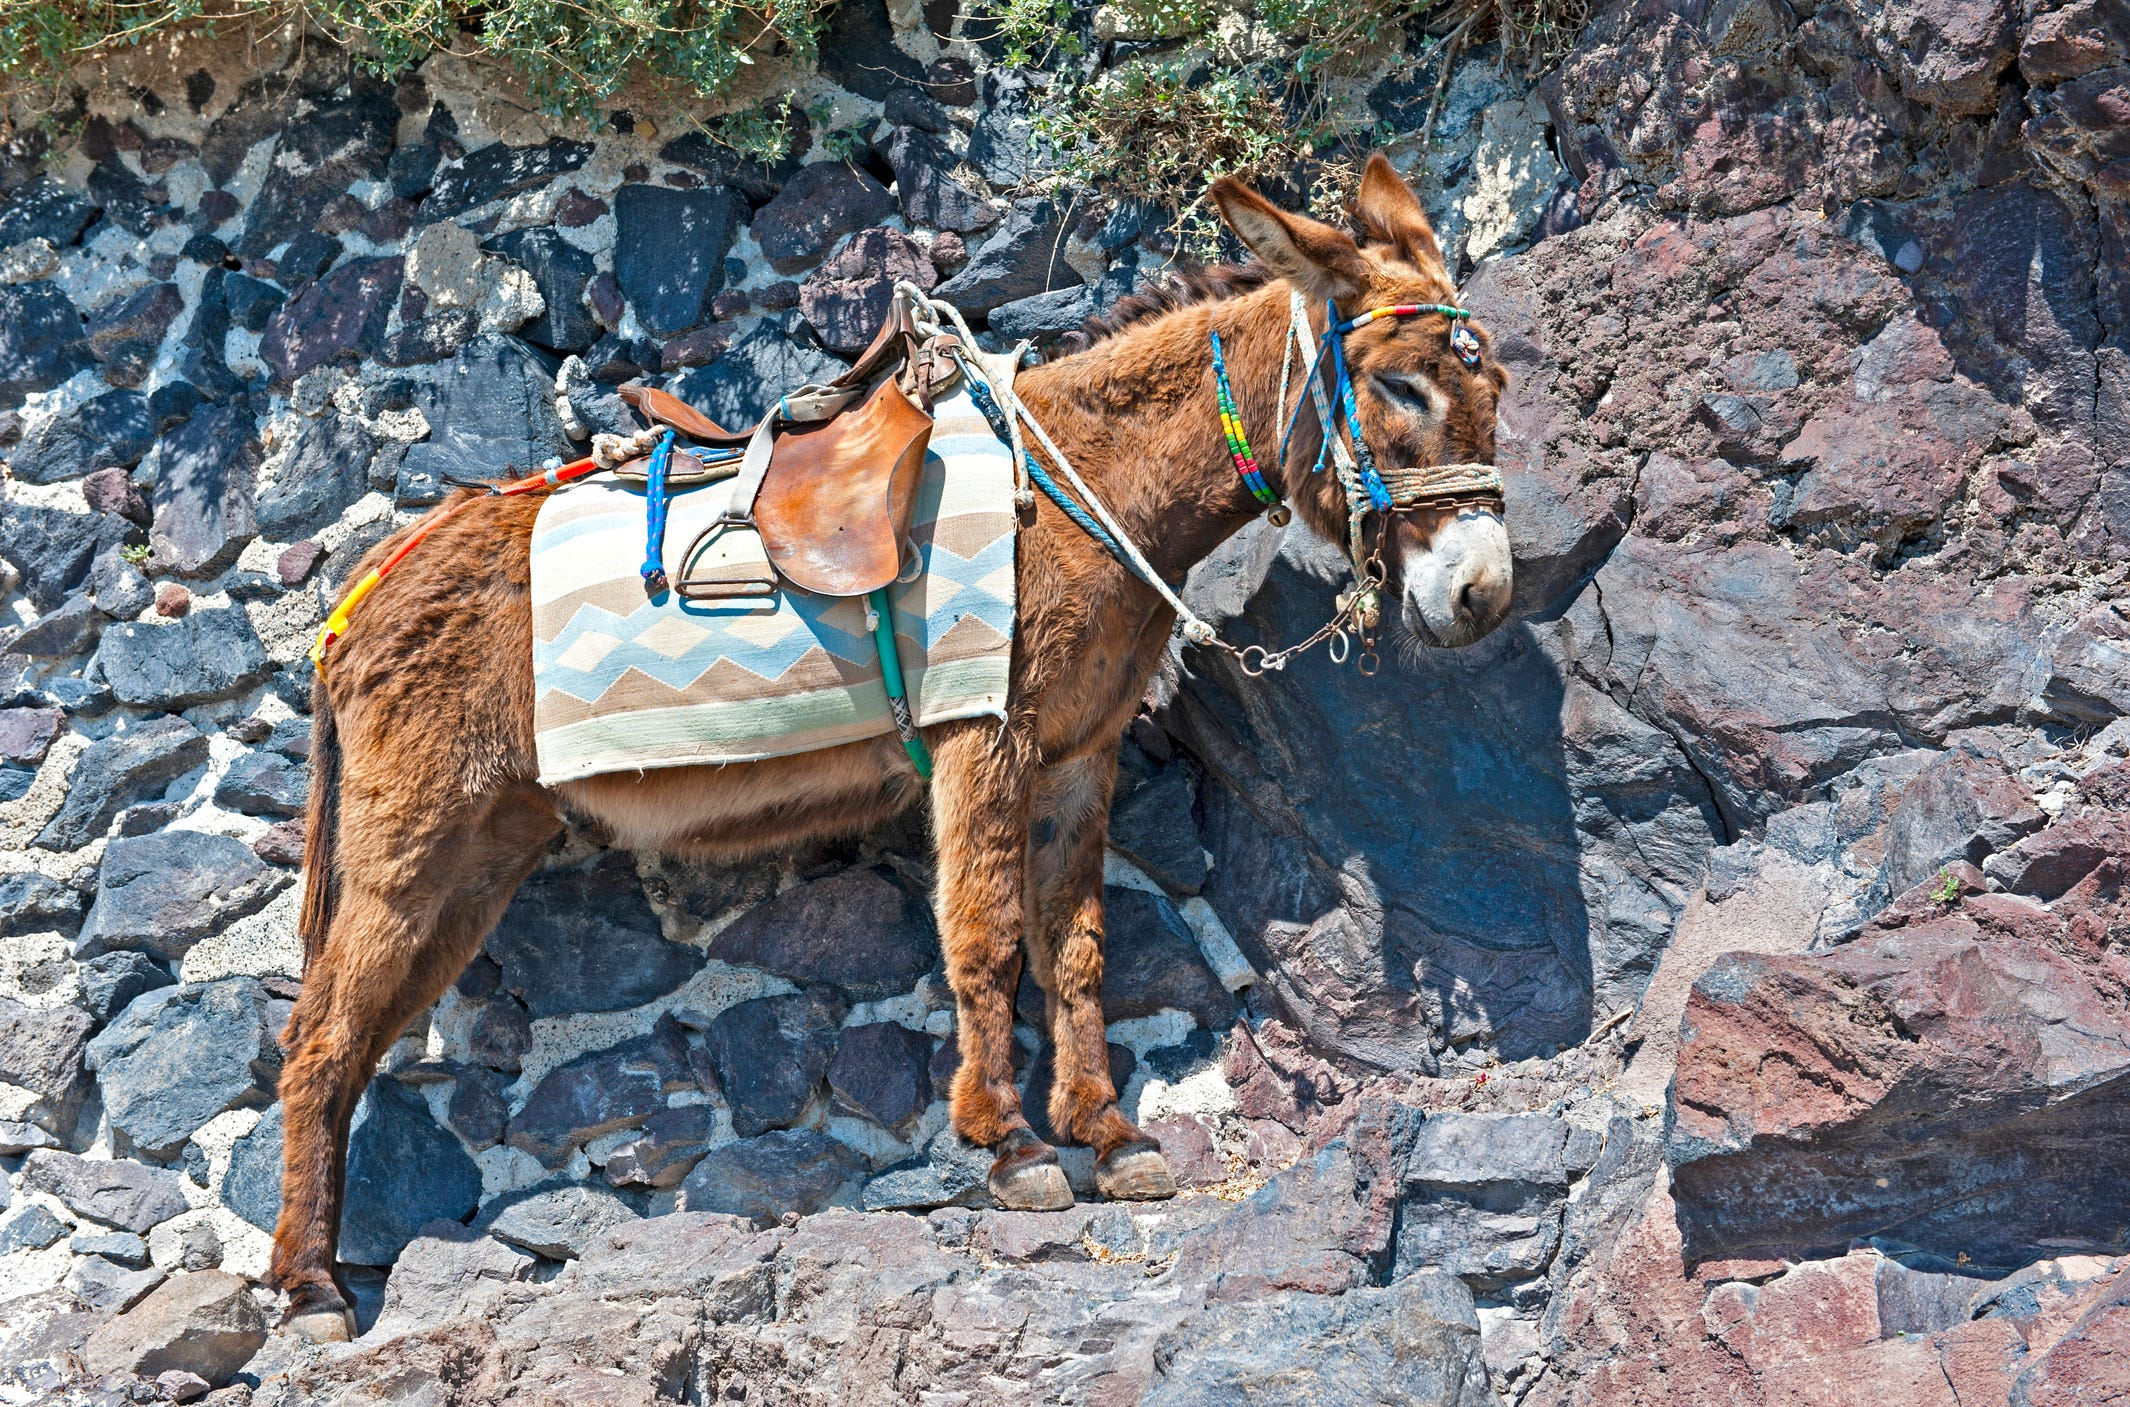 In Santorini, tourists who weigh more than 220 pounds are now banned from riding donkeys